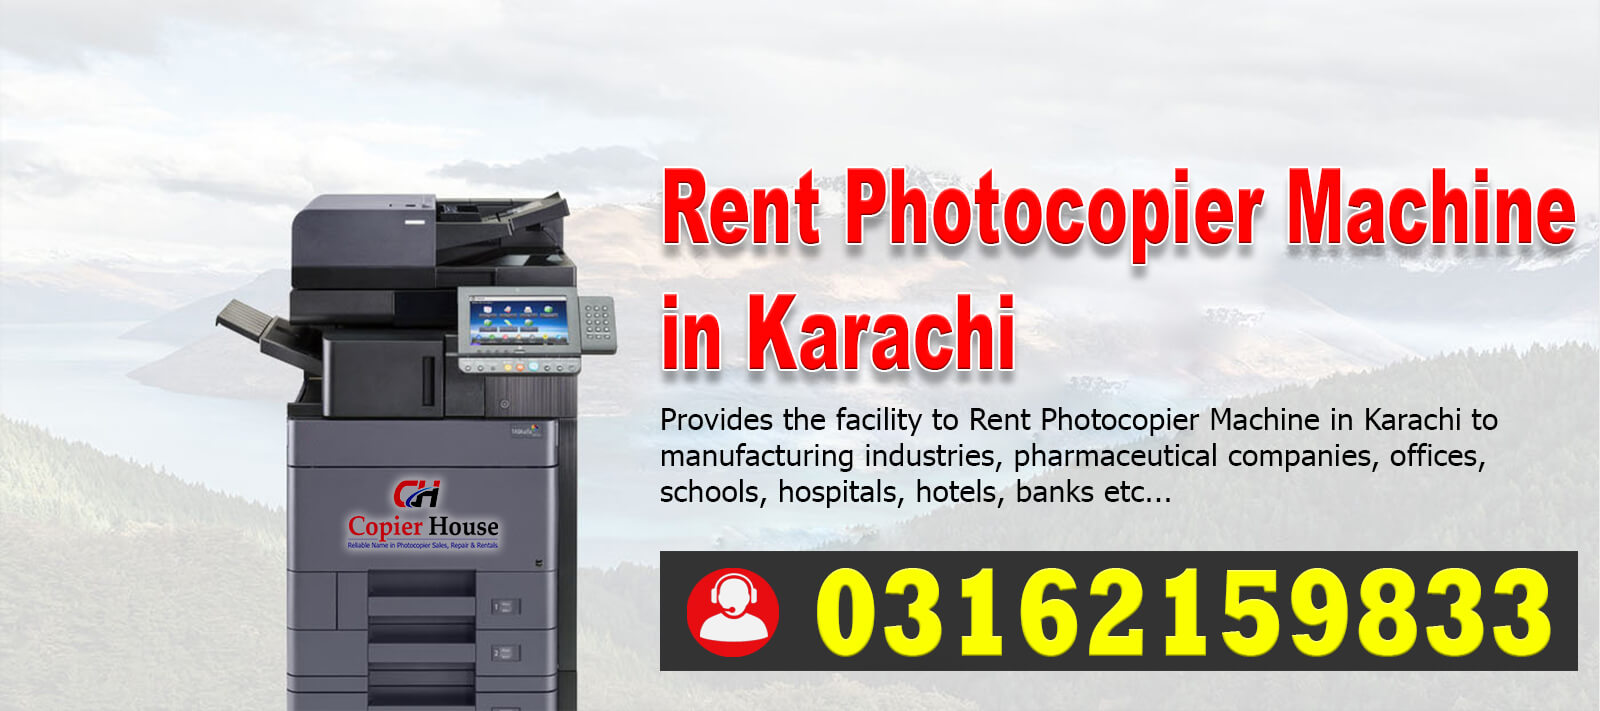 rent-photocopier-machine-in-karachi-Pakistan